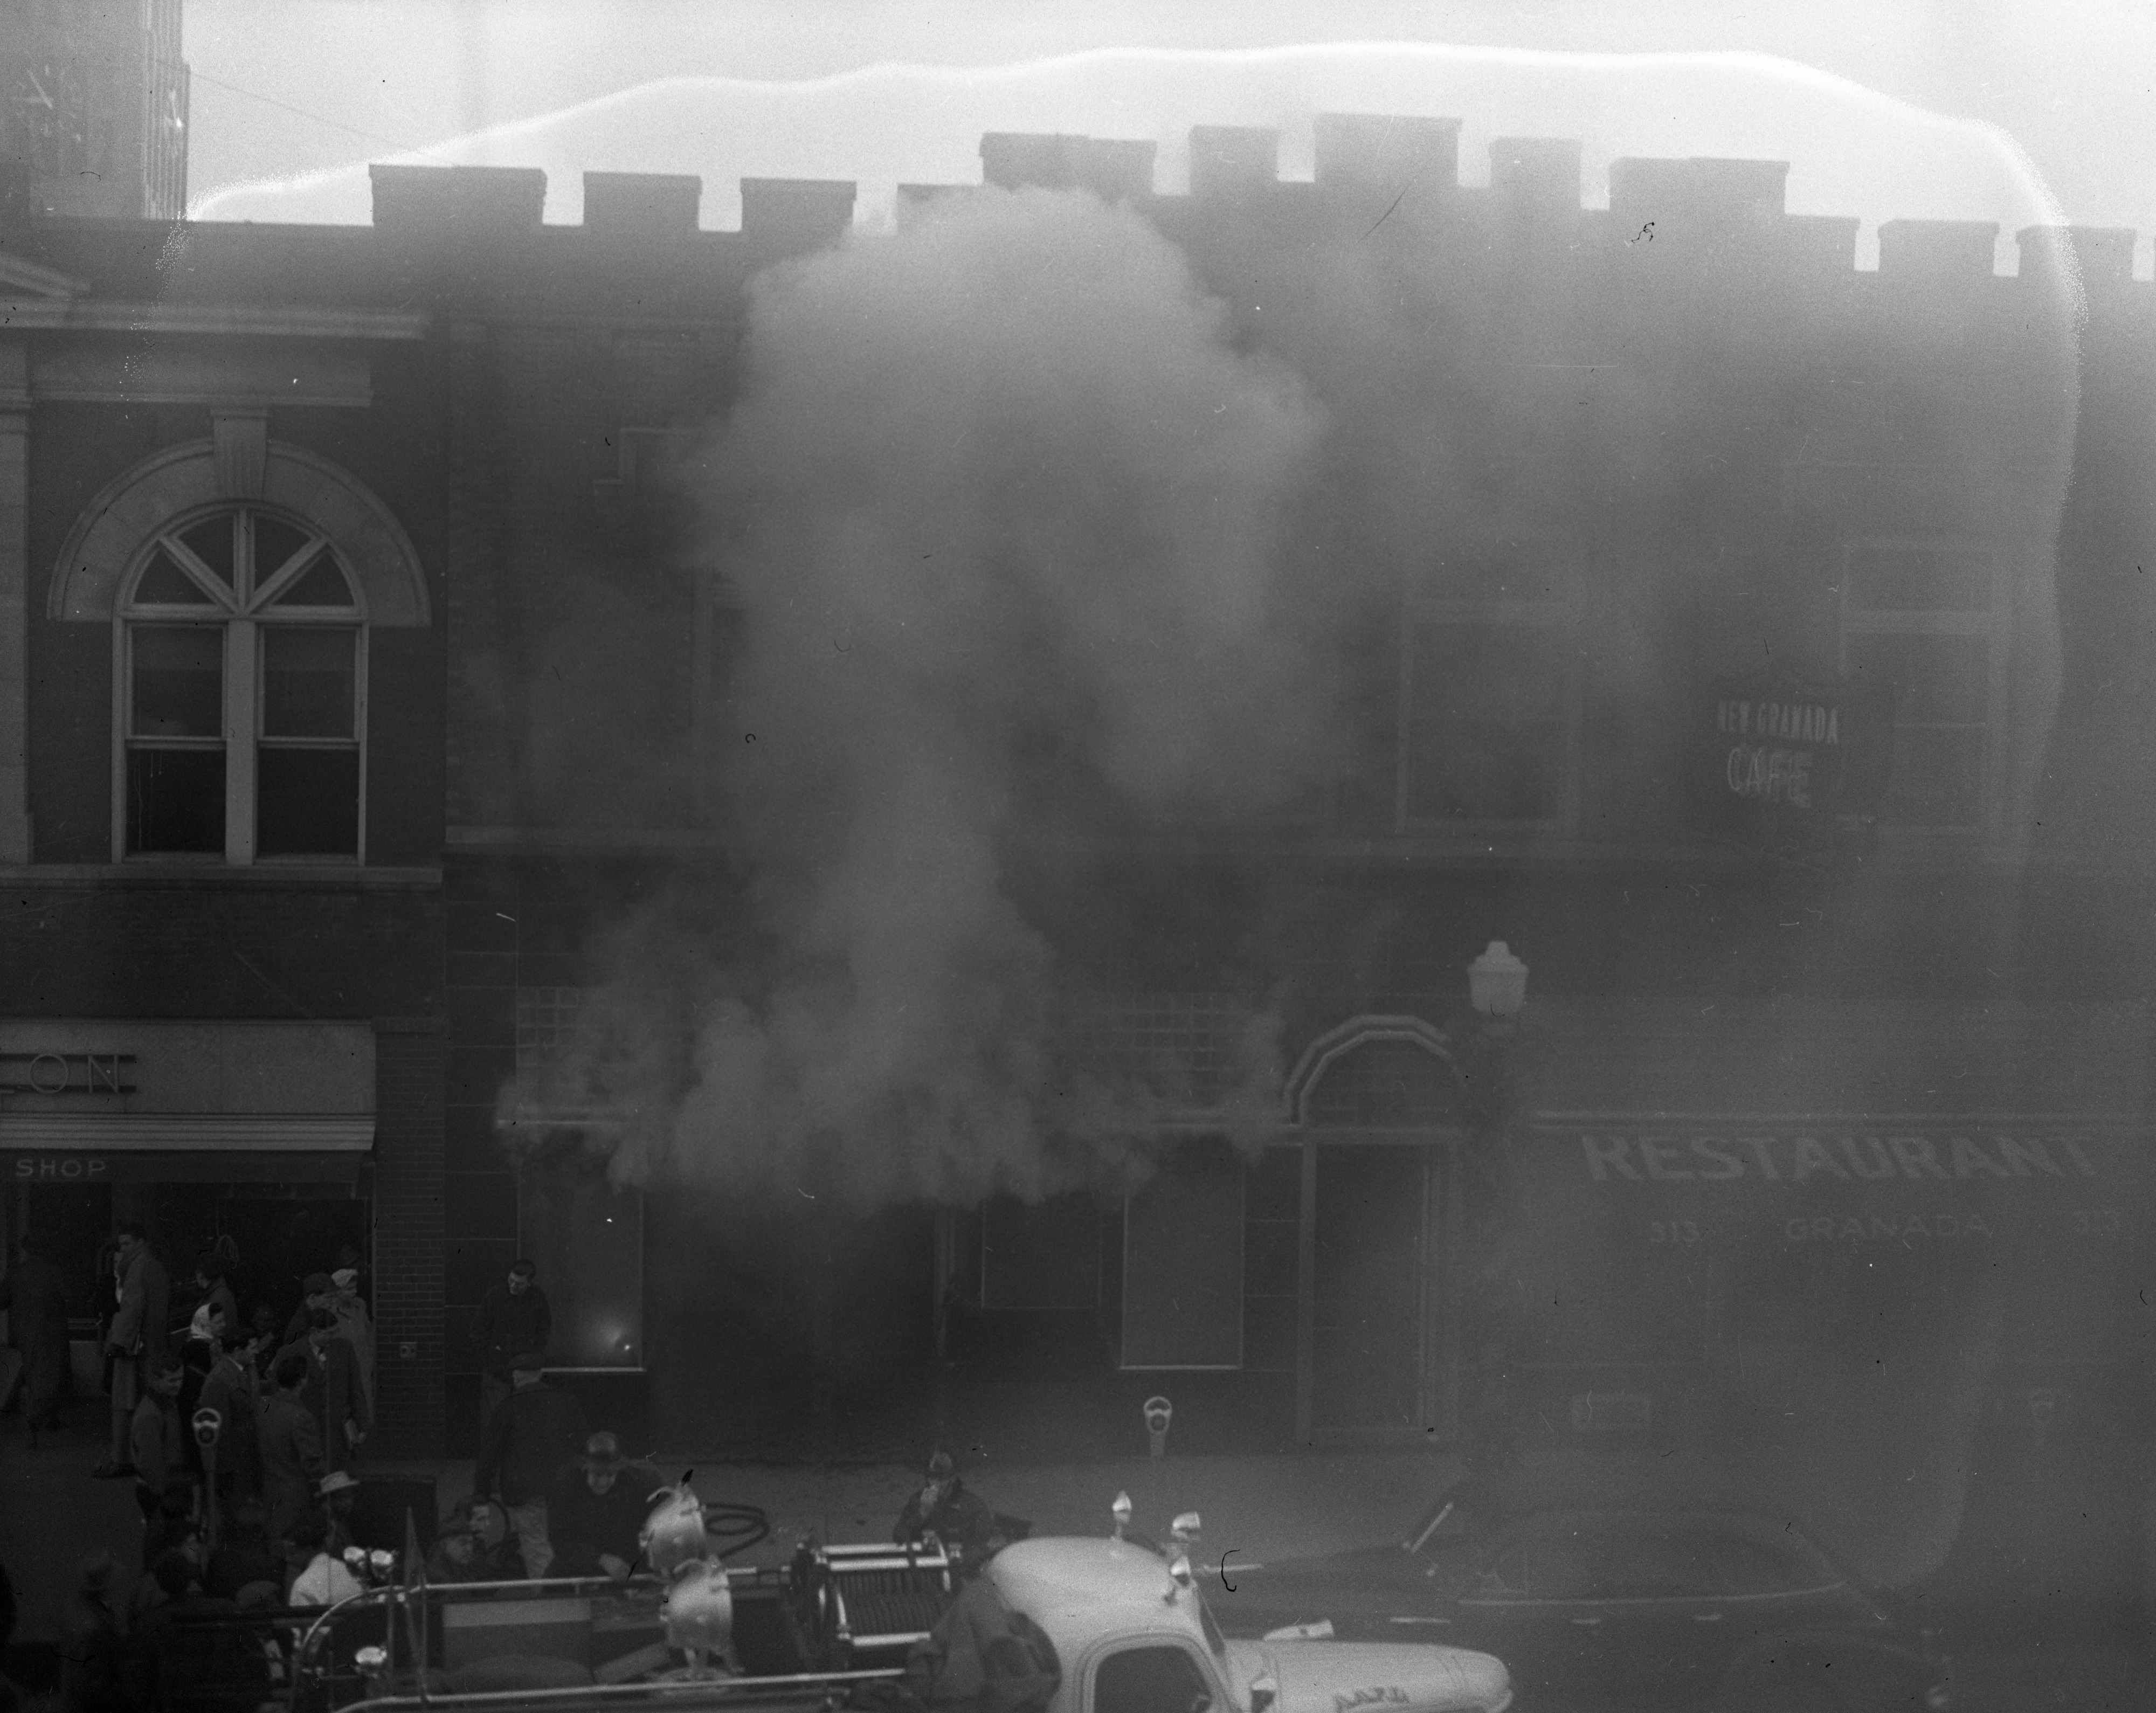 Adjoining Businesses Engulfed in Smoke During Wild & Co. Fire On State St, December 1947 image